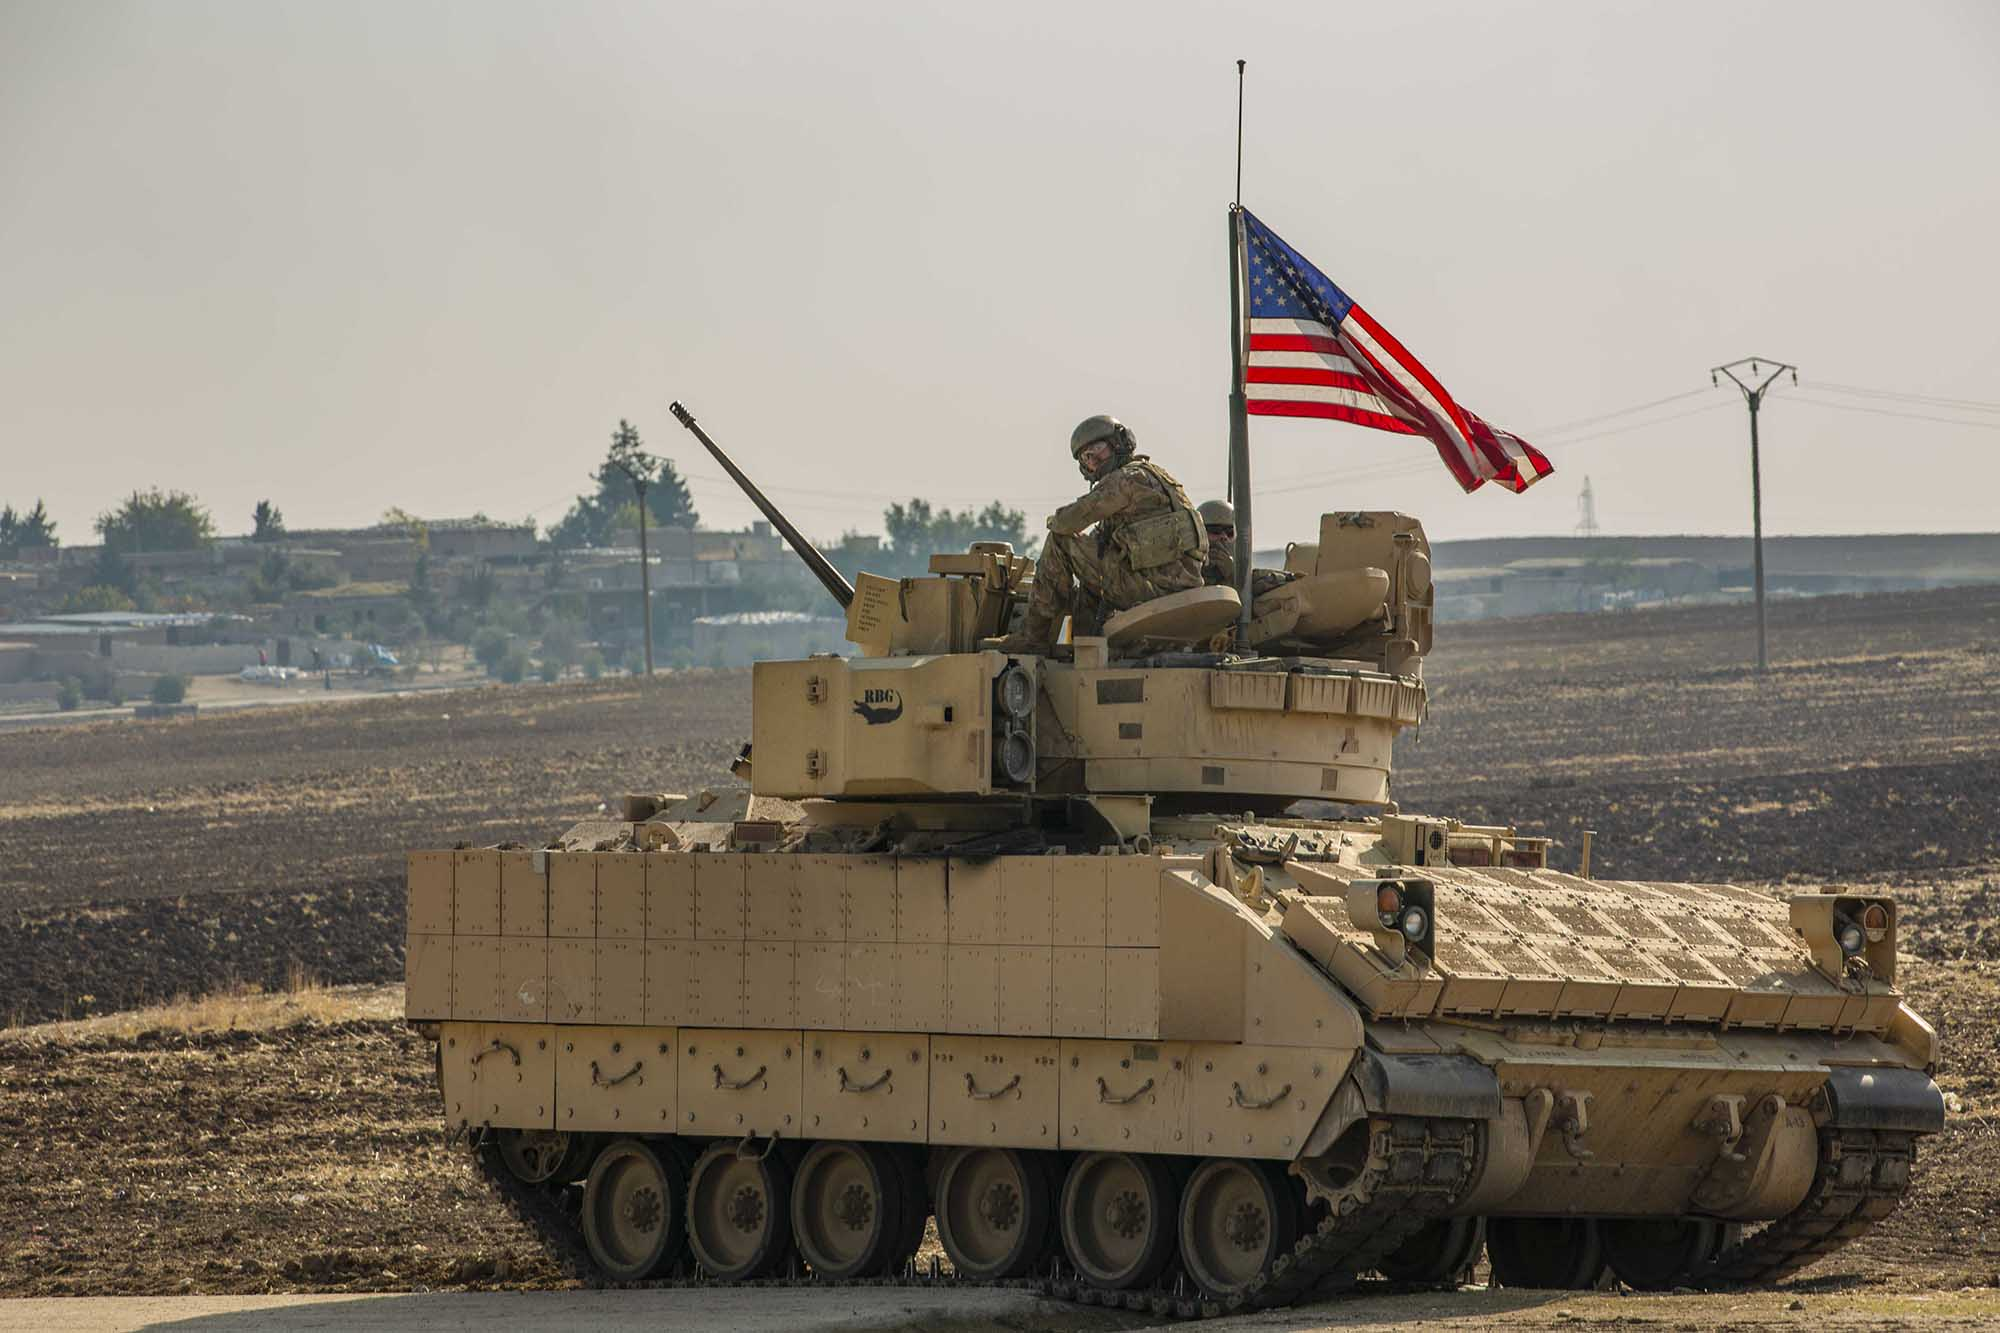 A U.S. soldier sits in the gunner's seat of a M2 Bradley Infantry Fighting Vehicle in Syria in the Central Command area of responsibility, Dec. 11, 2020. (Spc. Jensen Guillory/Army)